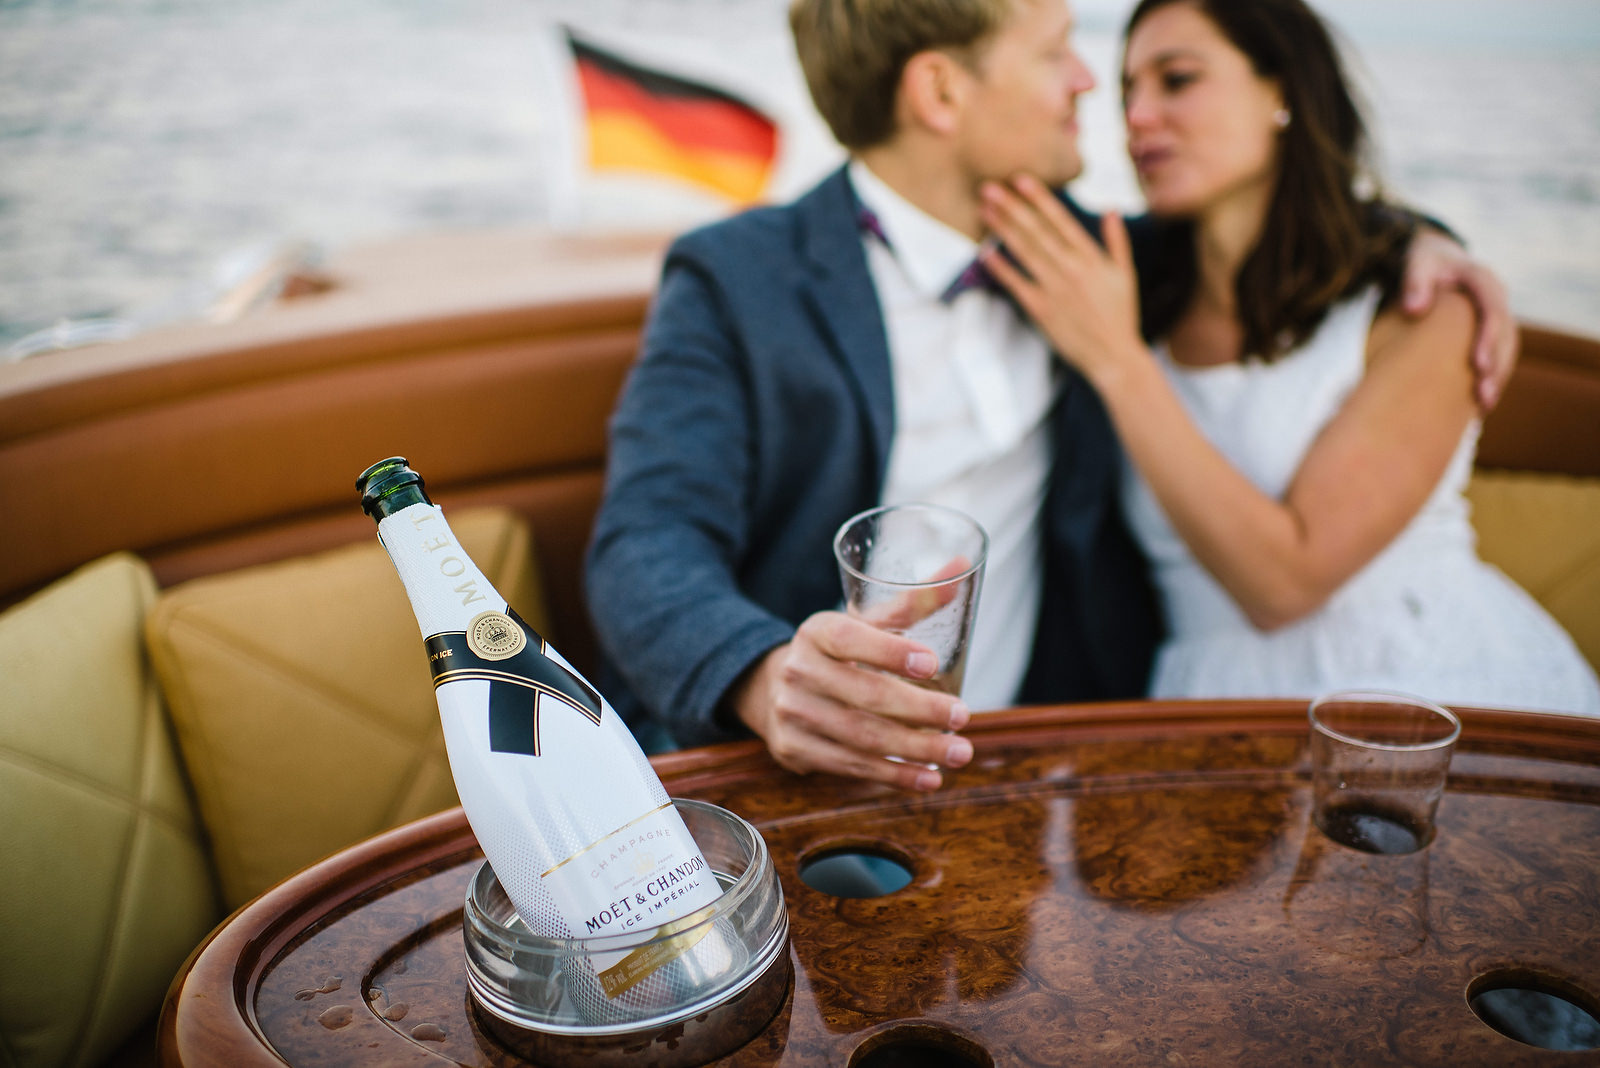 Fotograf Konstanz - Classic Boat Pegiva Shooting Bodensee Hochzeit Erlebnis EFP 44 - Experience a Pegiva boat shooting on Lake Constance  - 15 -